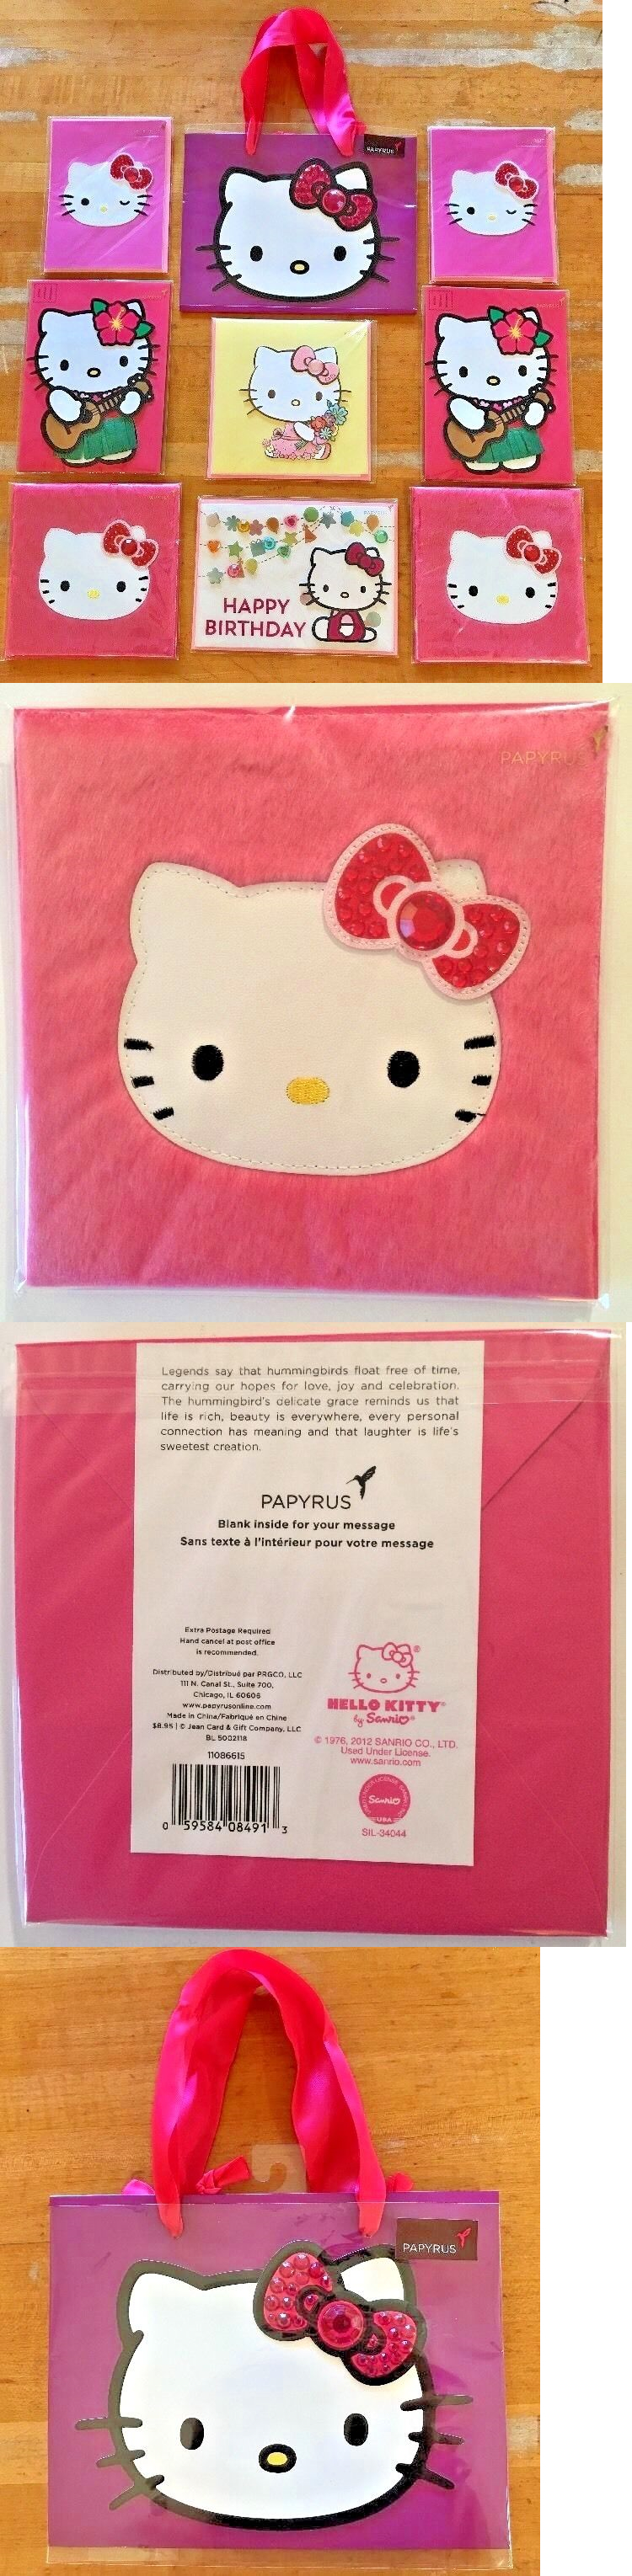 Greeting cards and invitations papyrus hello kitty items